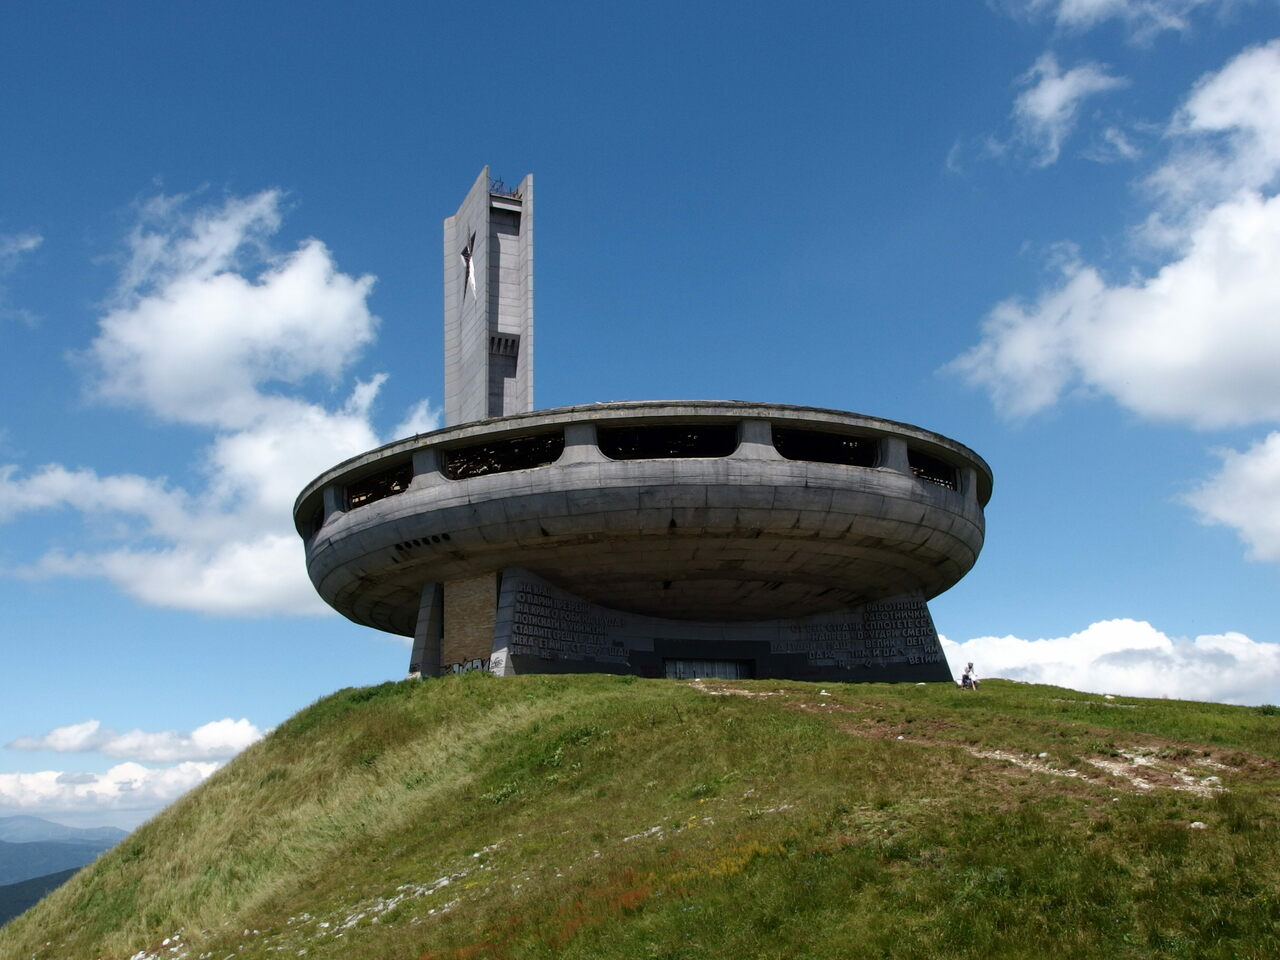 The strange and beautiful Buzludzha Monument.